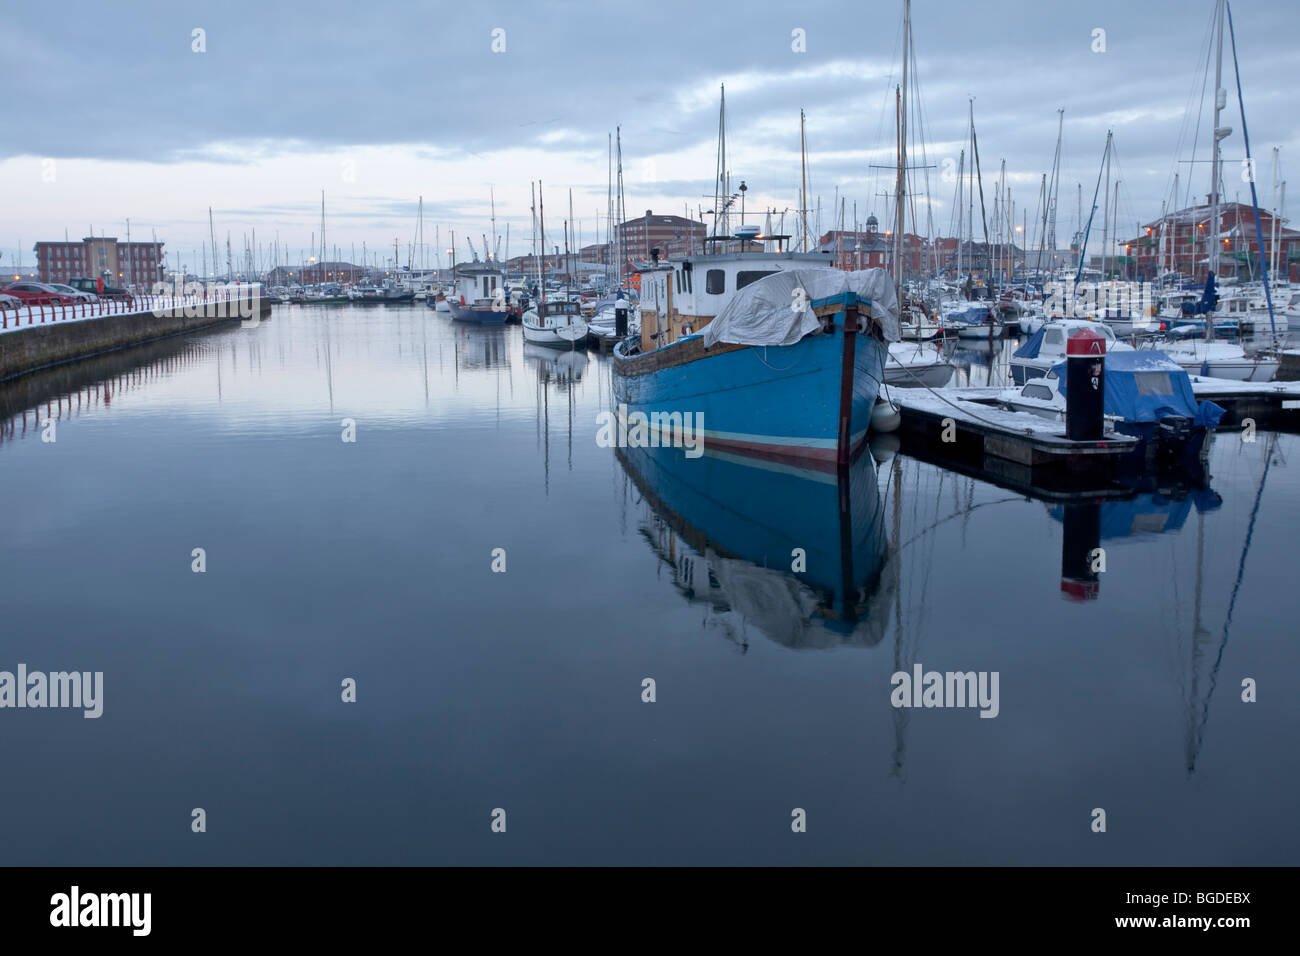 Yachts and boats berthed in Hartlepool Marina on a winter's day - Stock Image